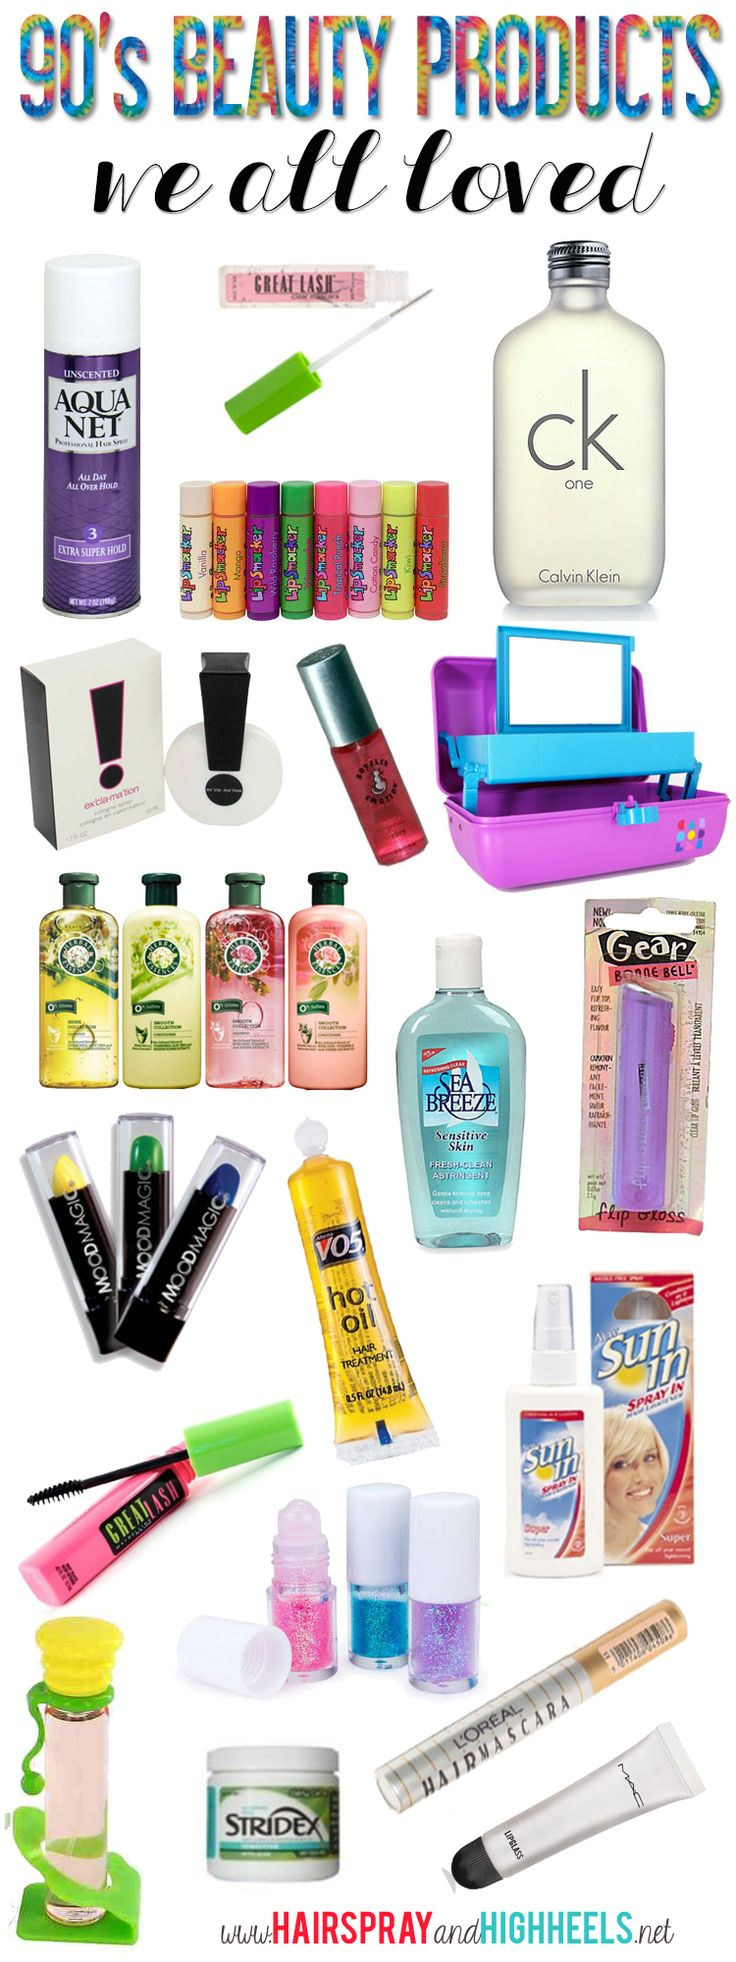 90's Beauty Products! Which of these did you use?